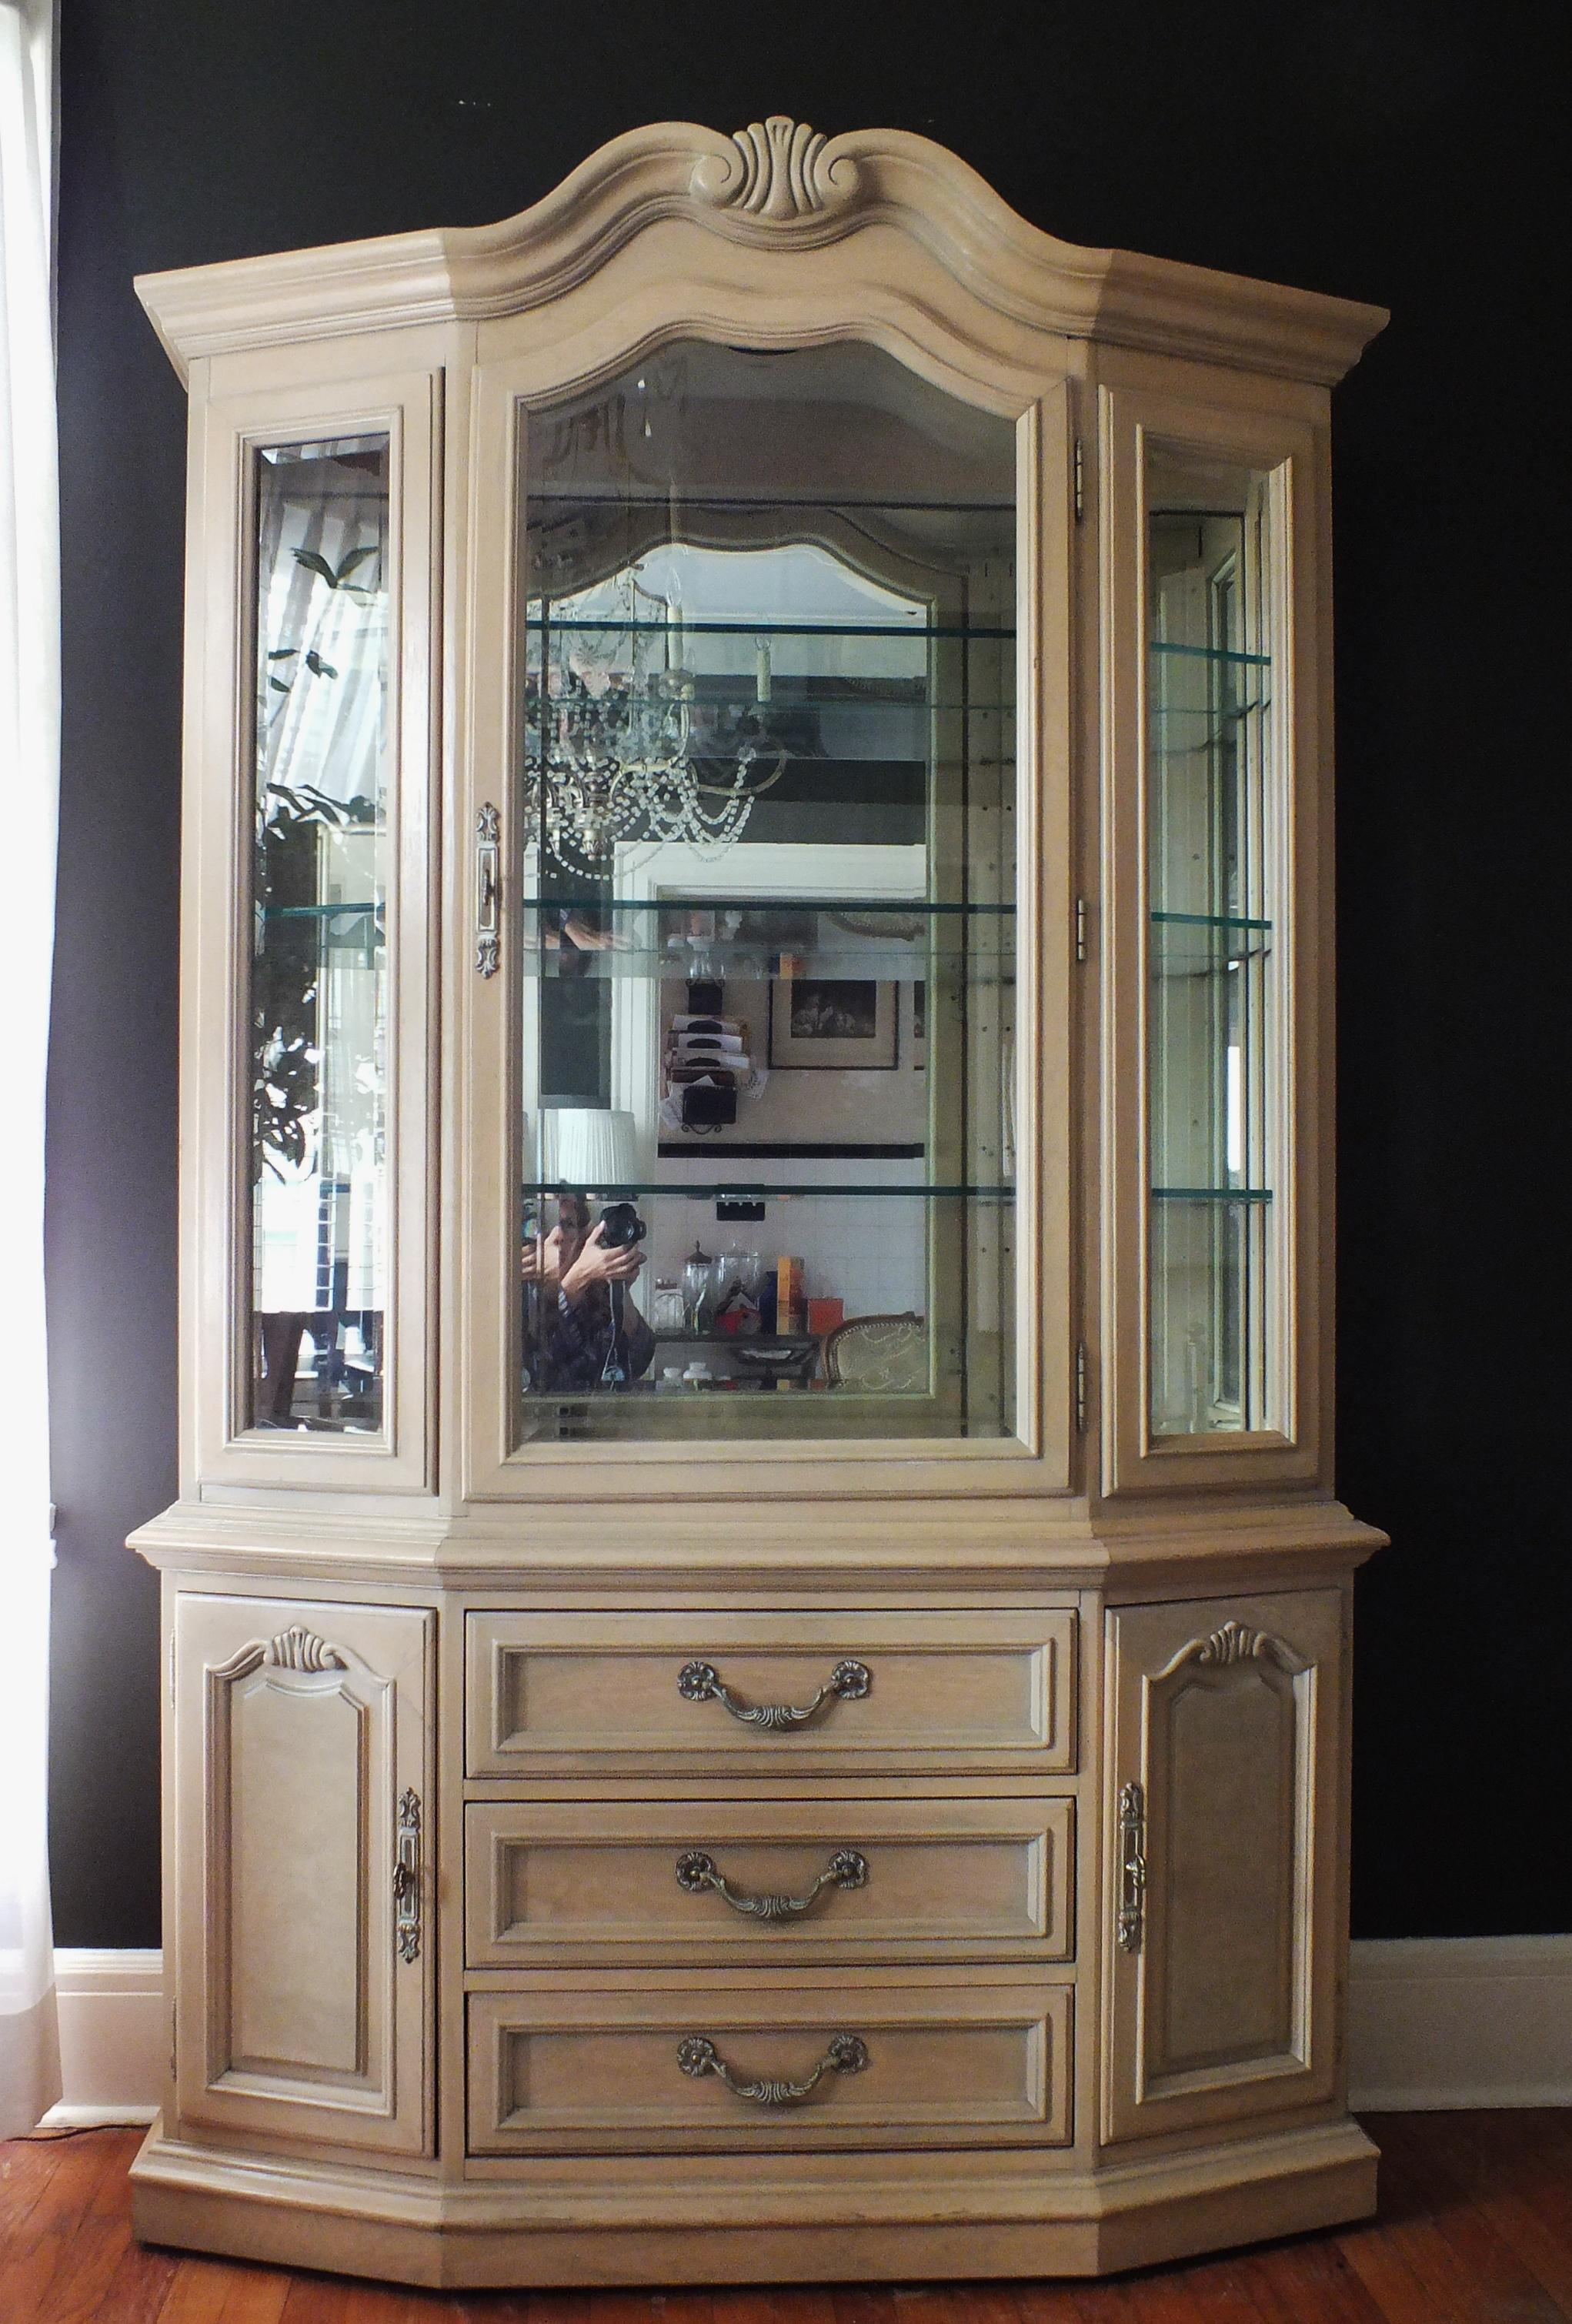 Attrayant An Absolutely Stunning Vintage Thomasville Furniture Country French Style  China Cabinet In Original Antique White Finish